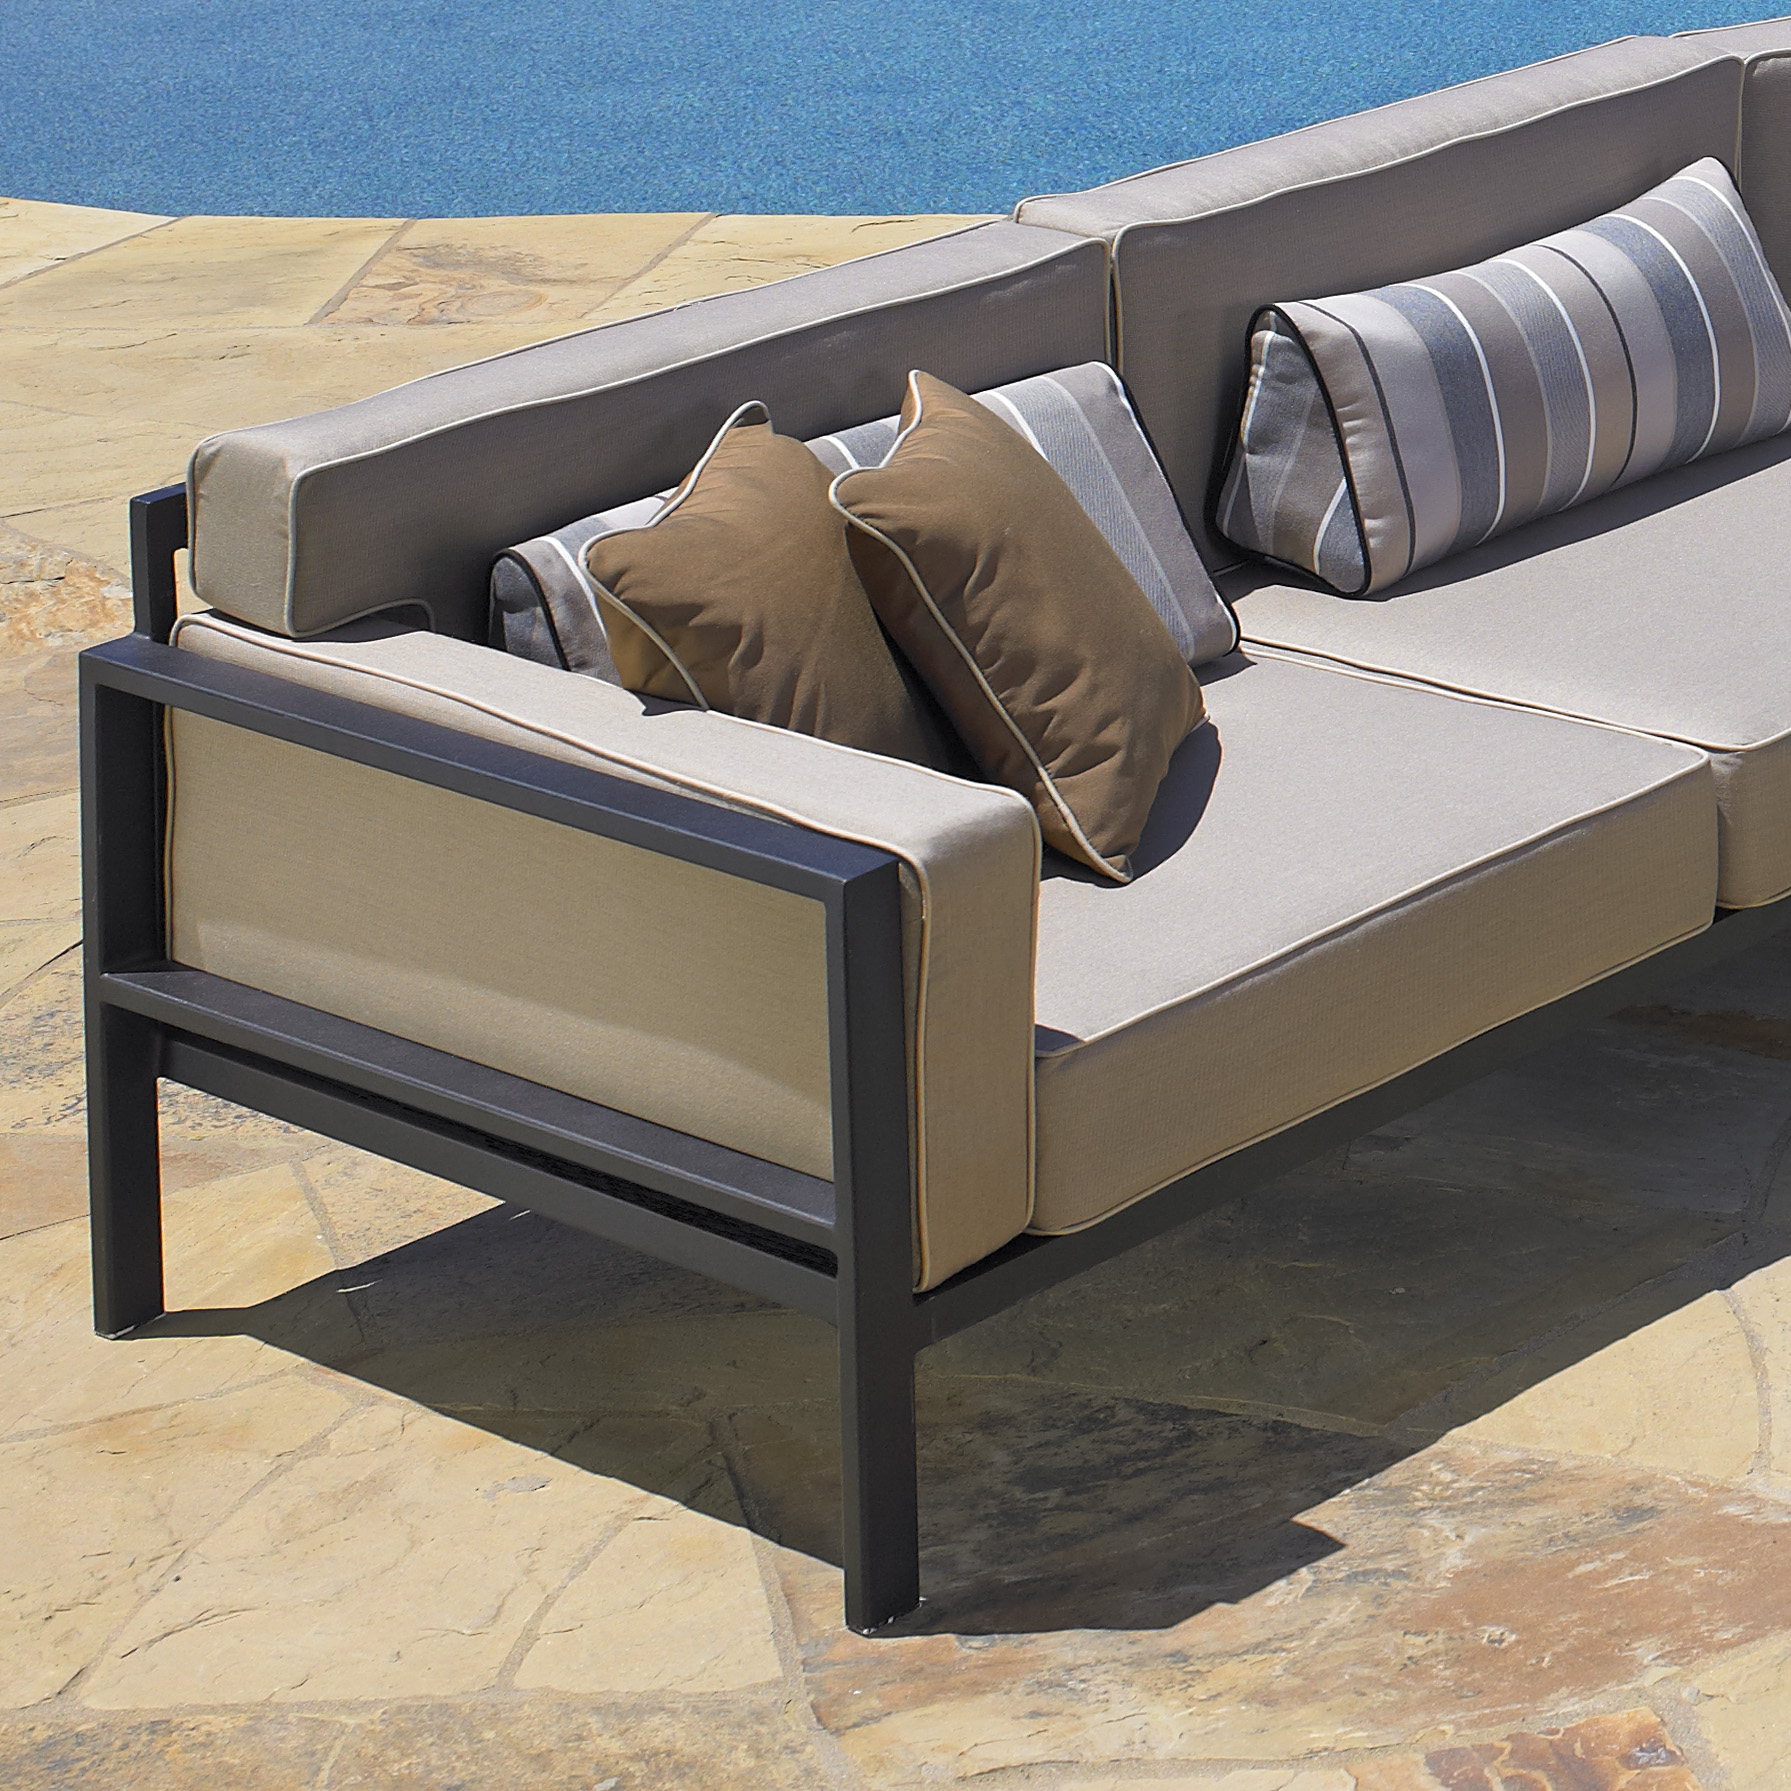 Sectional Couches Las Vegas Nv: NorthCape International Outdoor Furniture